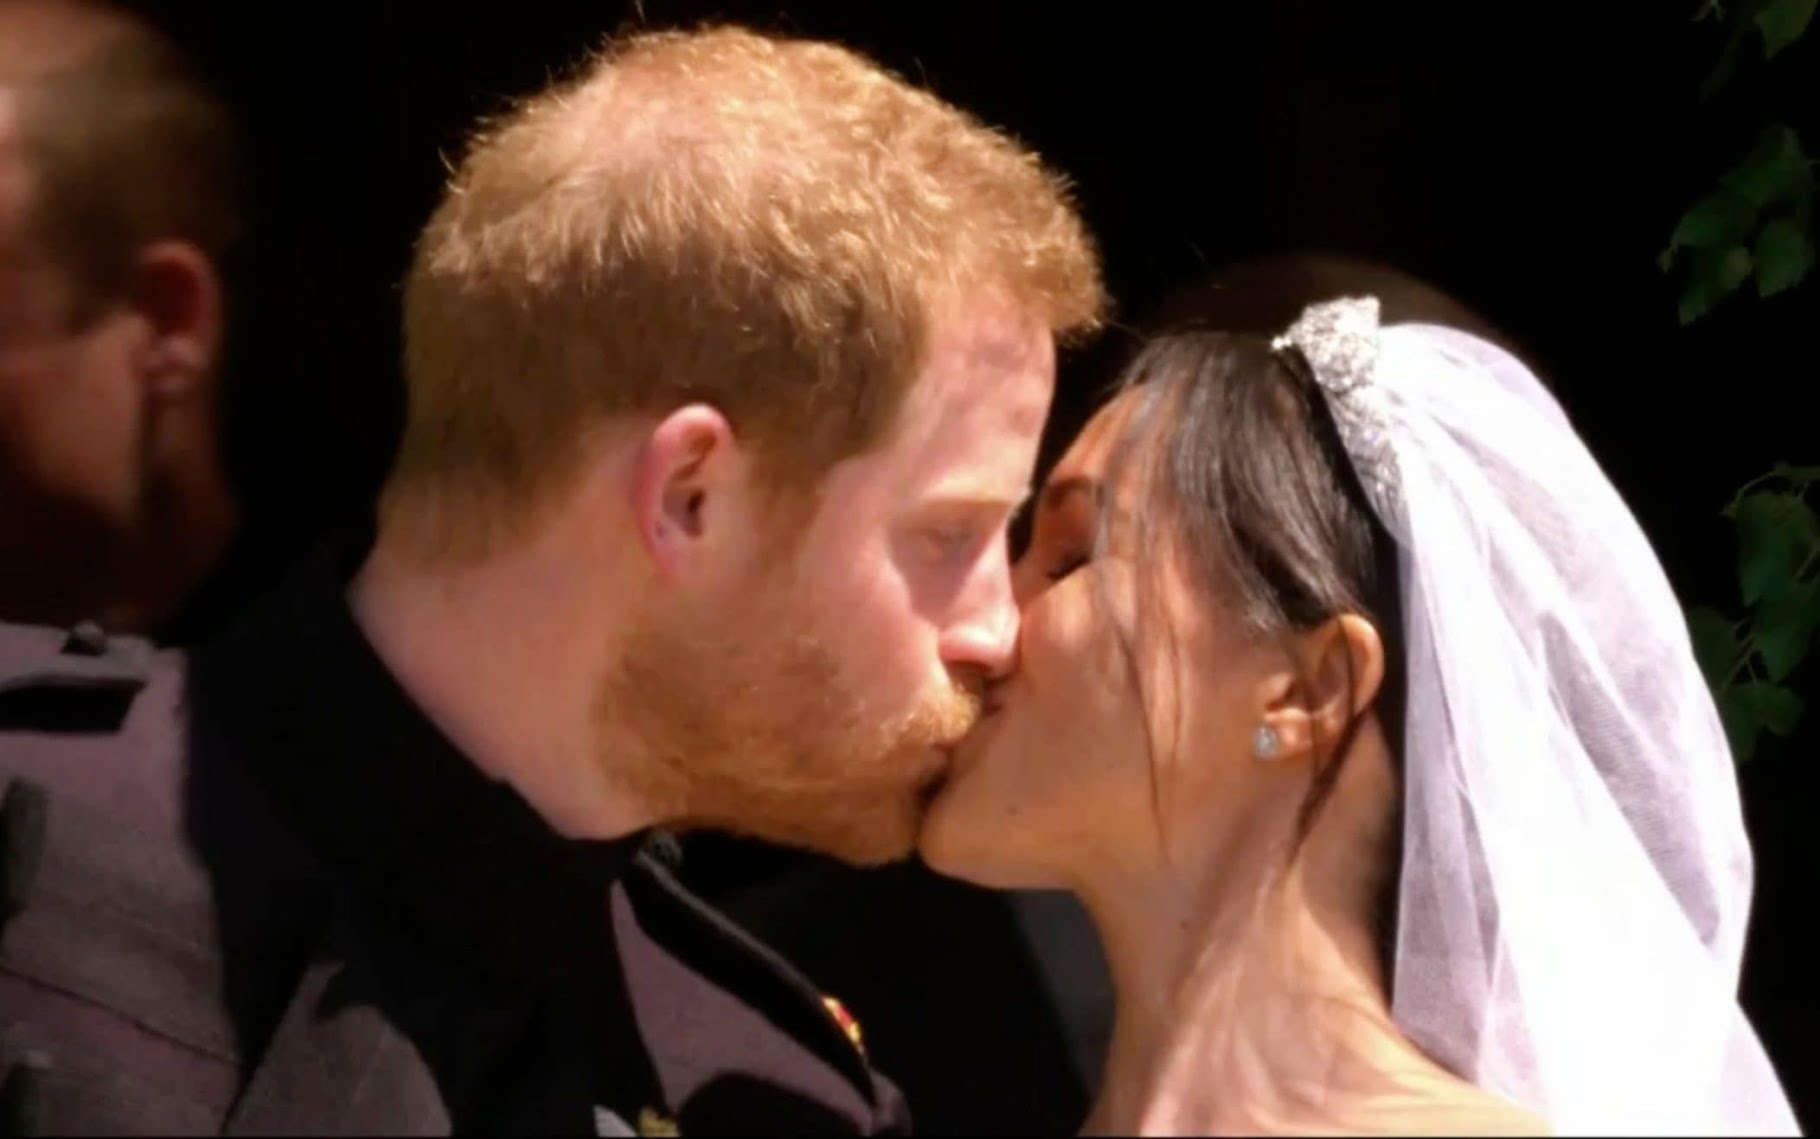 A royal kiss: Prince Harry and Meghan Markle kiss after their wedding ceremony